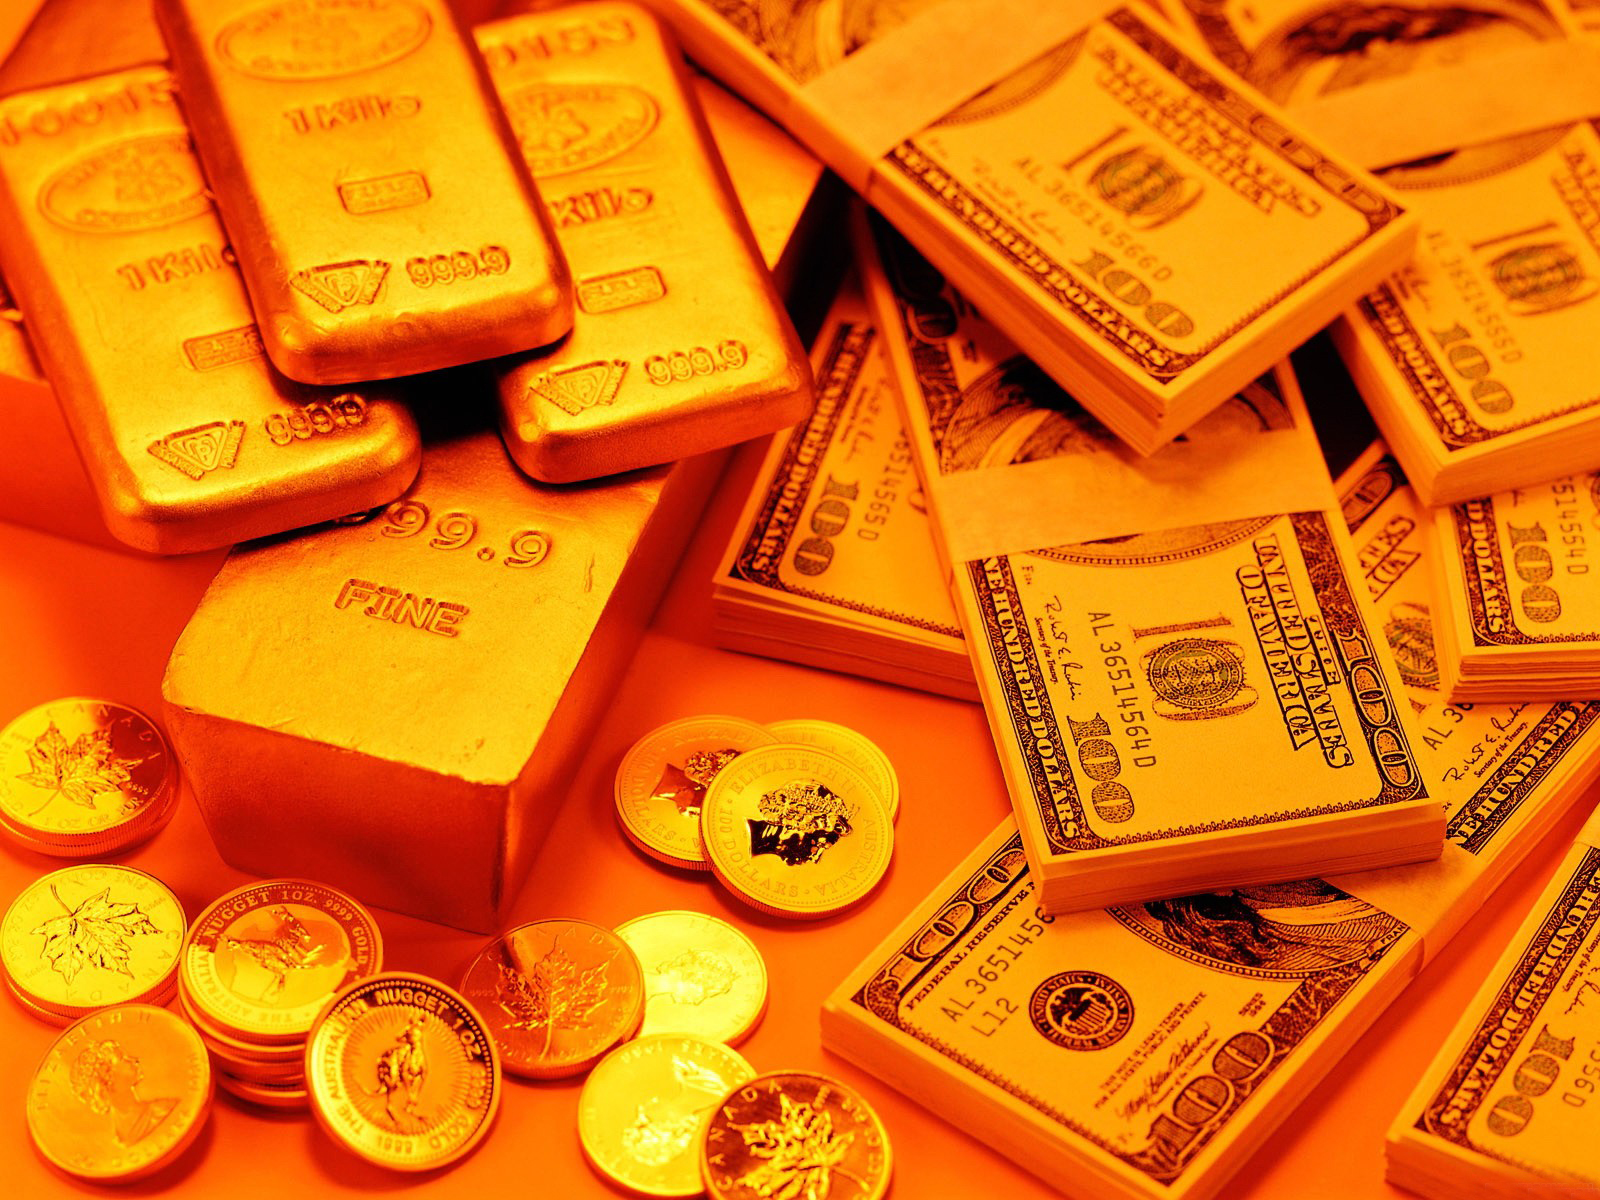 ����� ����� ����� ������� �� ������ 21-4-2014 , The price of gold today in Kuwait